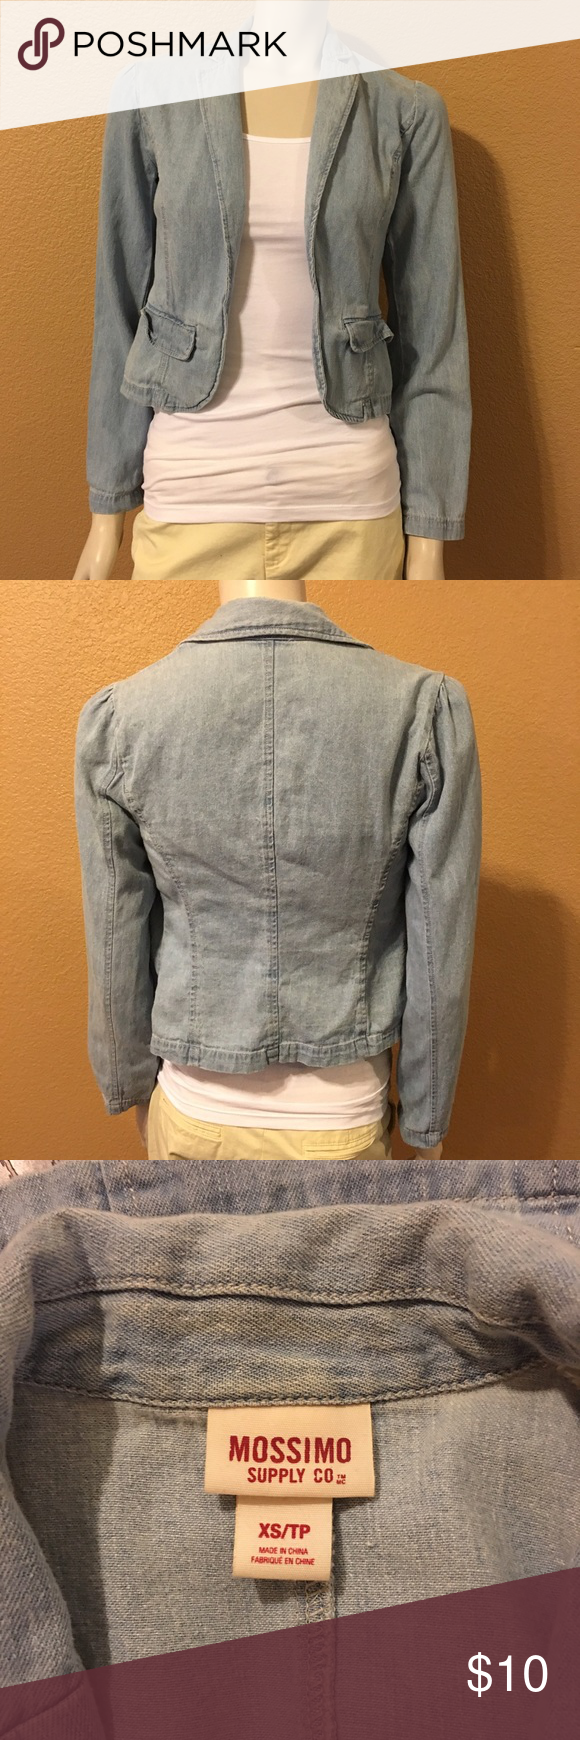 Mossimo Jacket Light weight Mossimo blue jean jacket. Perfect match for any outfit! Mossimo Supply Co Jackets & Coats Jean Jackets